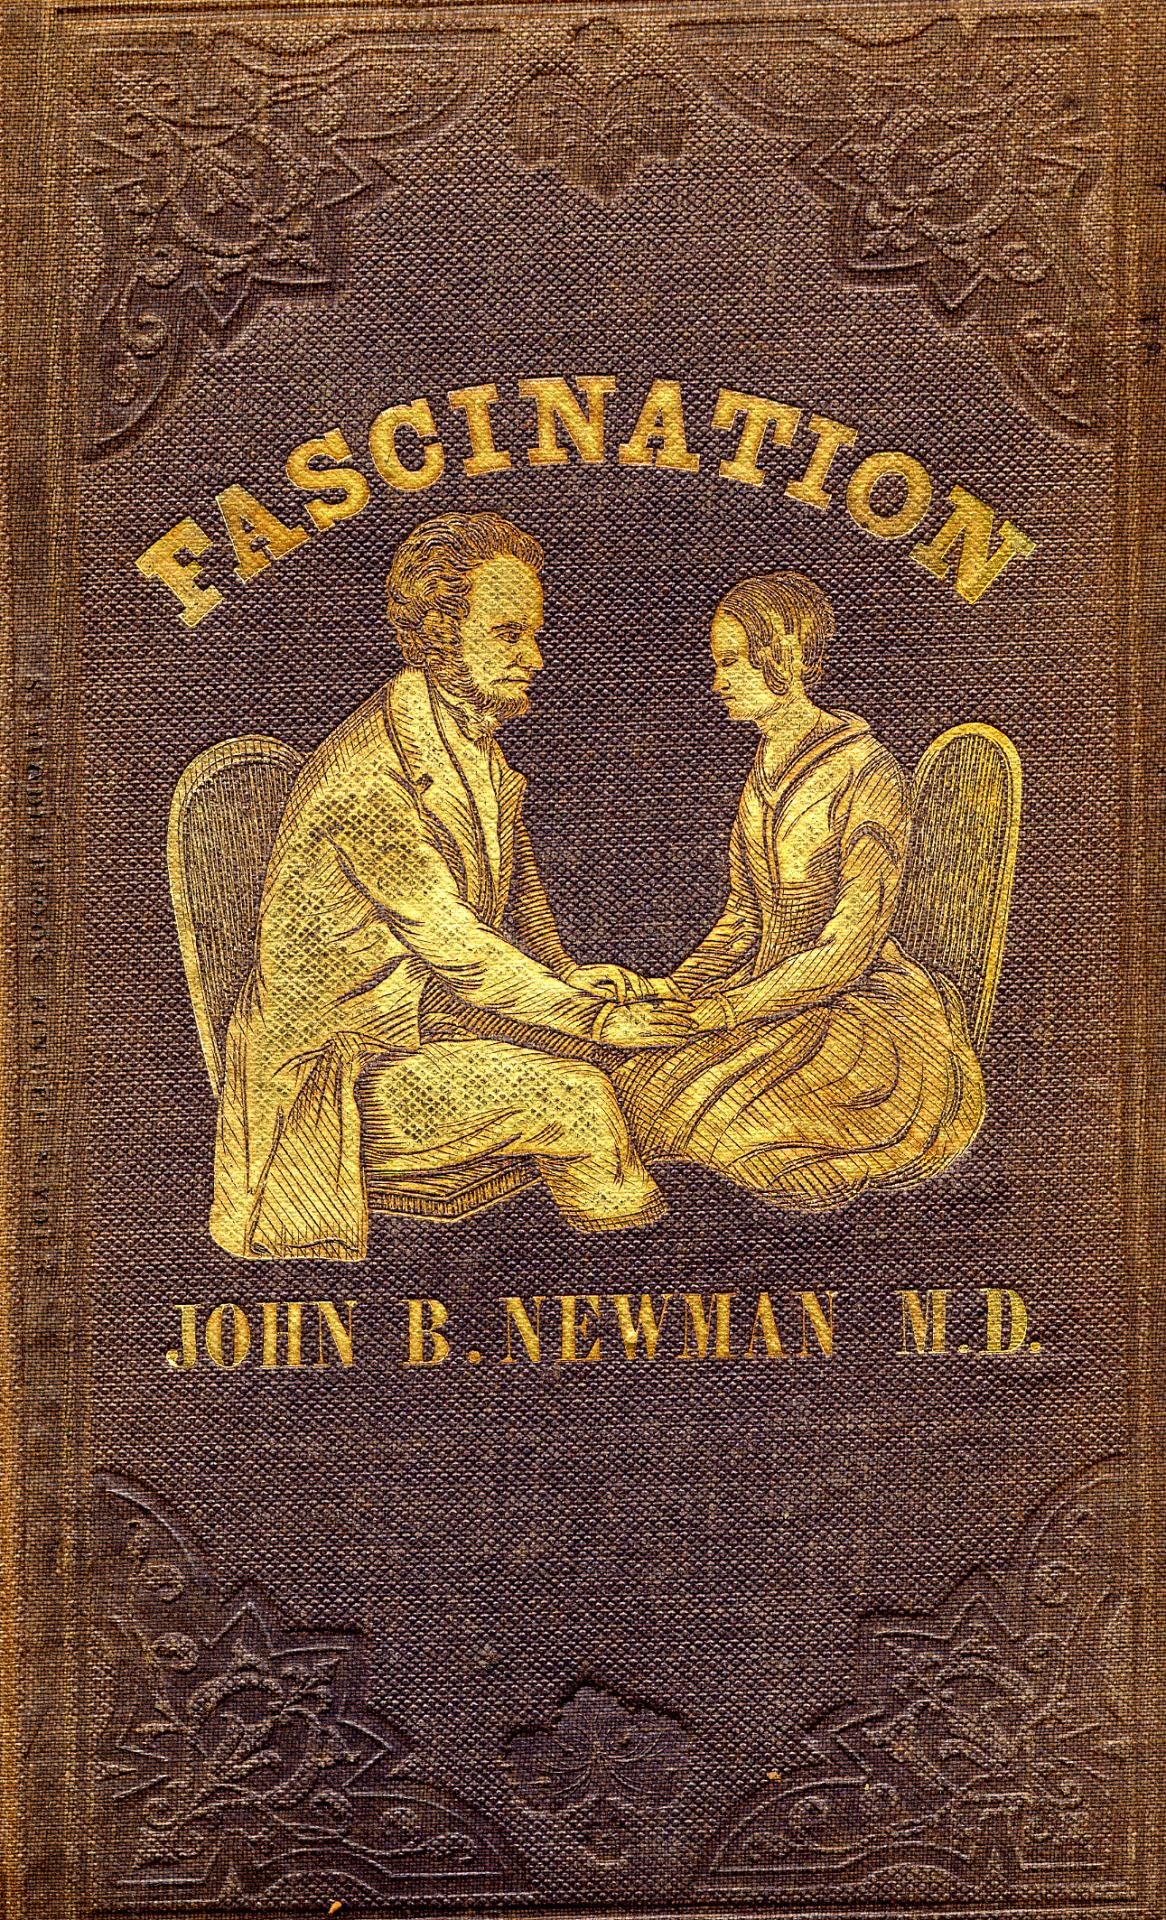 Fascination, a book about mesmerism.